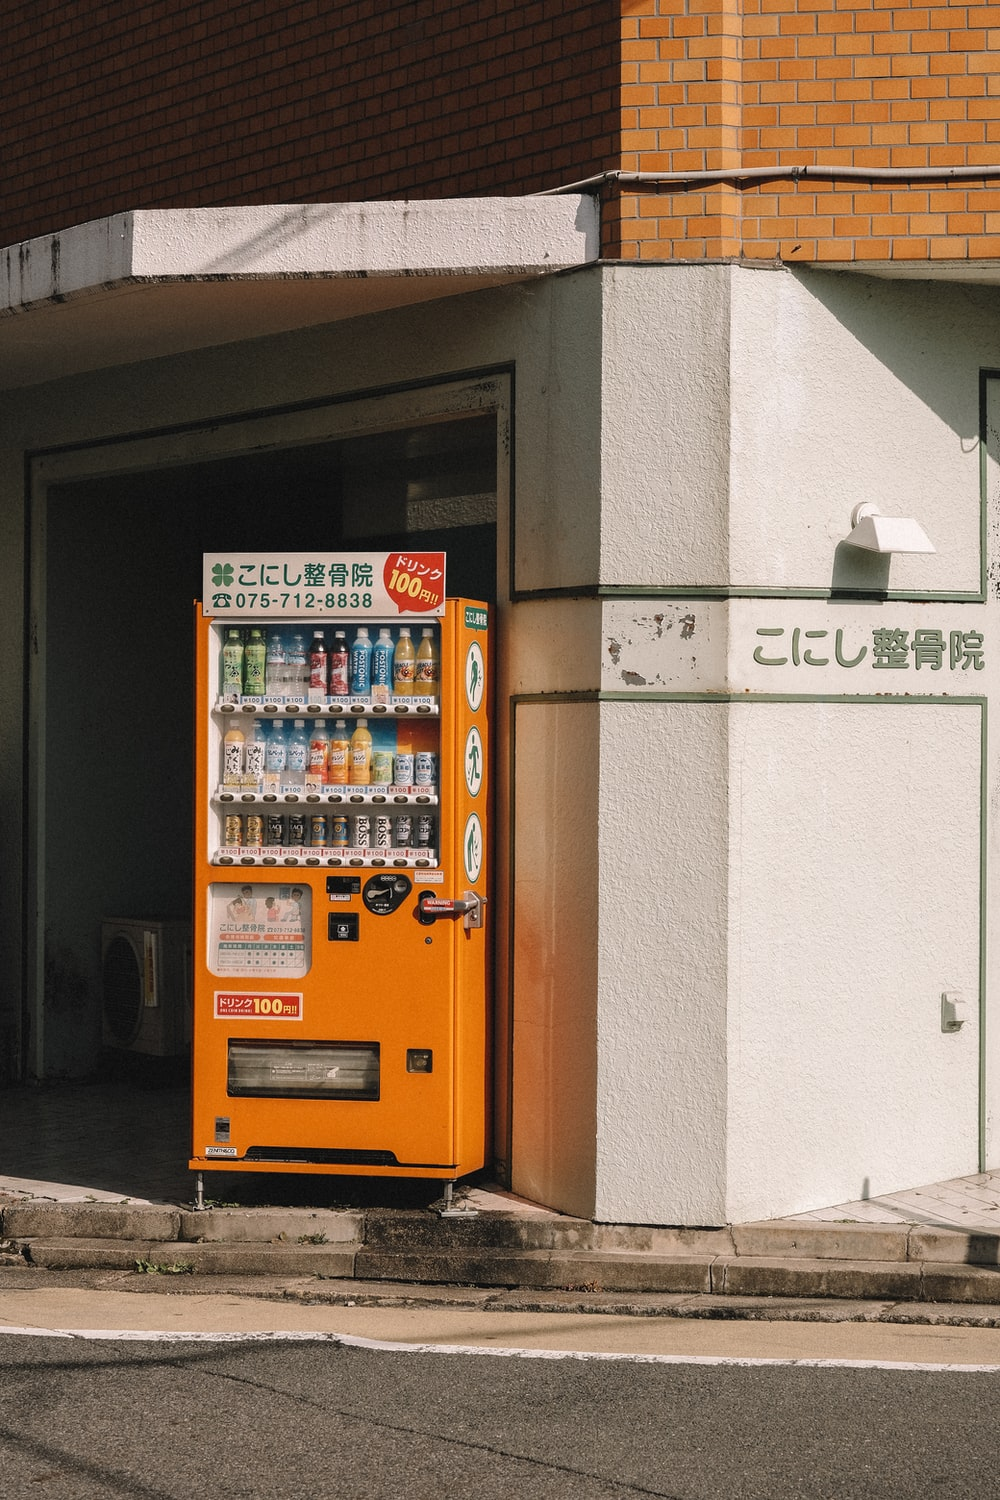 orange vending machine near building